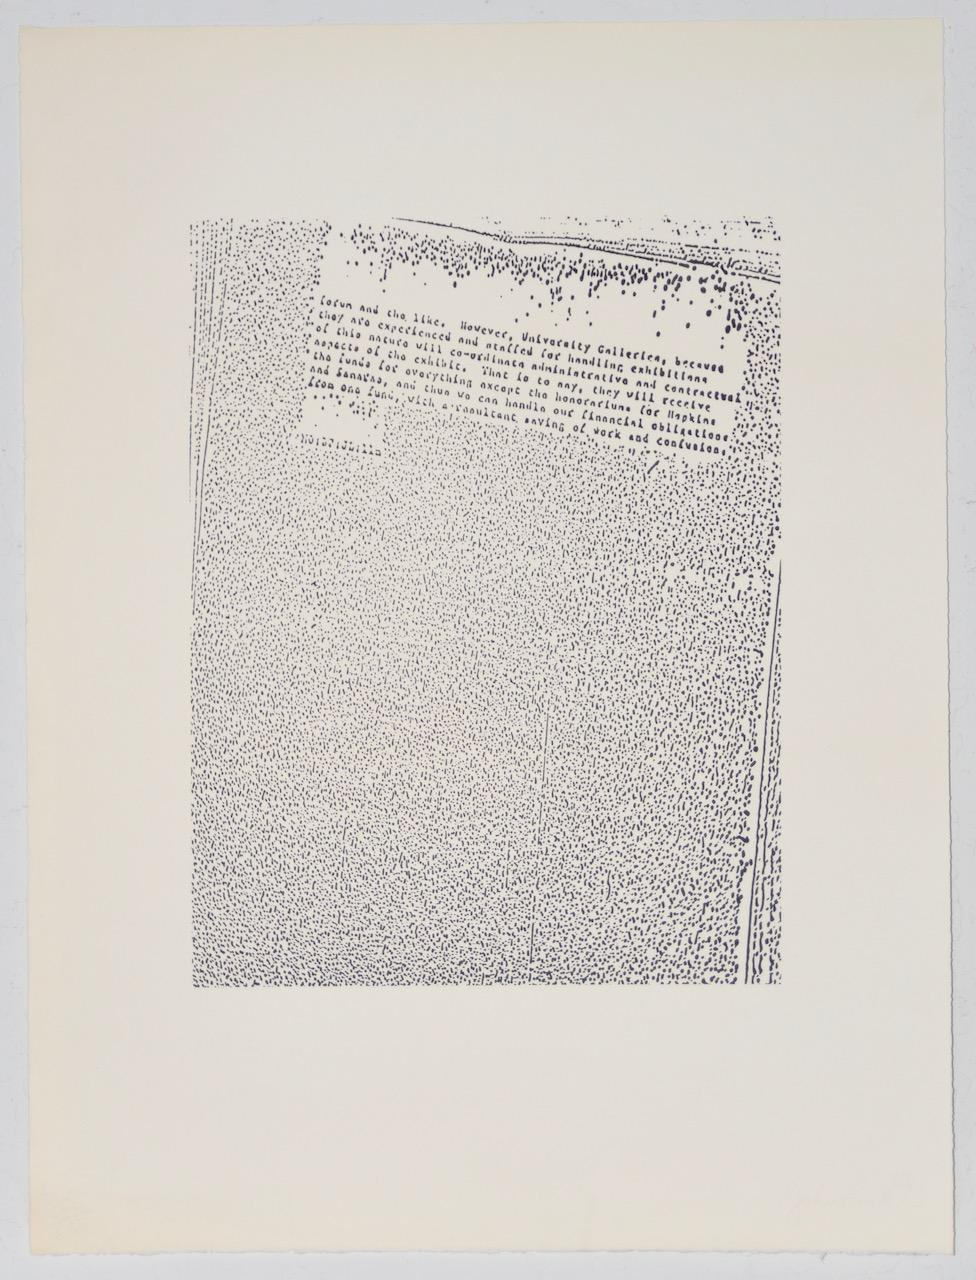 """John Link (American, b.1942) """"Untitled"""" Limited Edition Lithograph c.1973"""